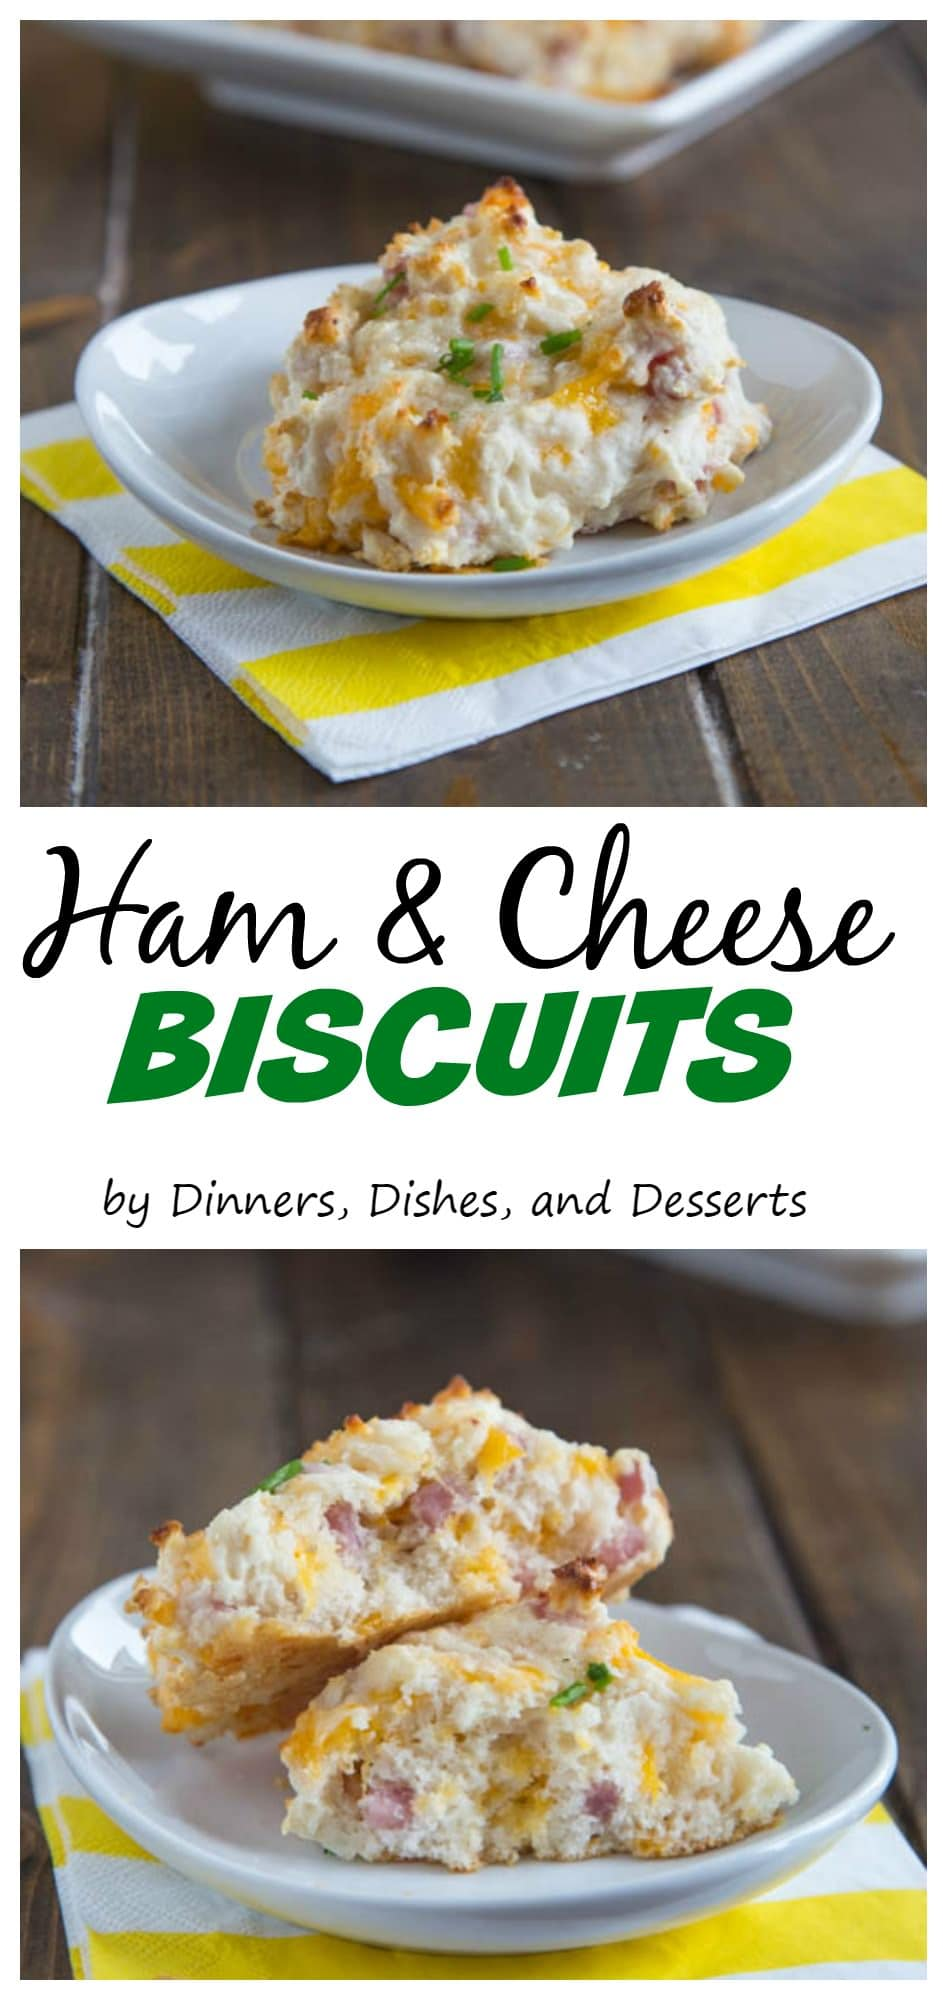 """data-recalc-dims=1>Ham & Cheese Biscuits – Fluffy drop biscuits full of cheddar cheese and diced ham. A great side dish, or use of leftover ham."""" width=""""625″ height=""""2000″></div><p>This is a sponsored conversation written by me on behalf of Betty Crocker via Burst Media. The opinions and text are all mine.</p><div class="""